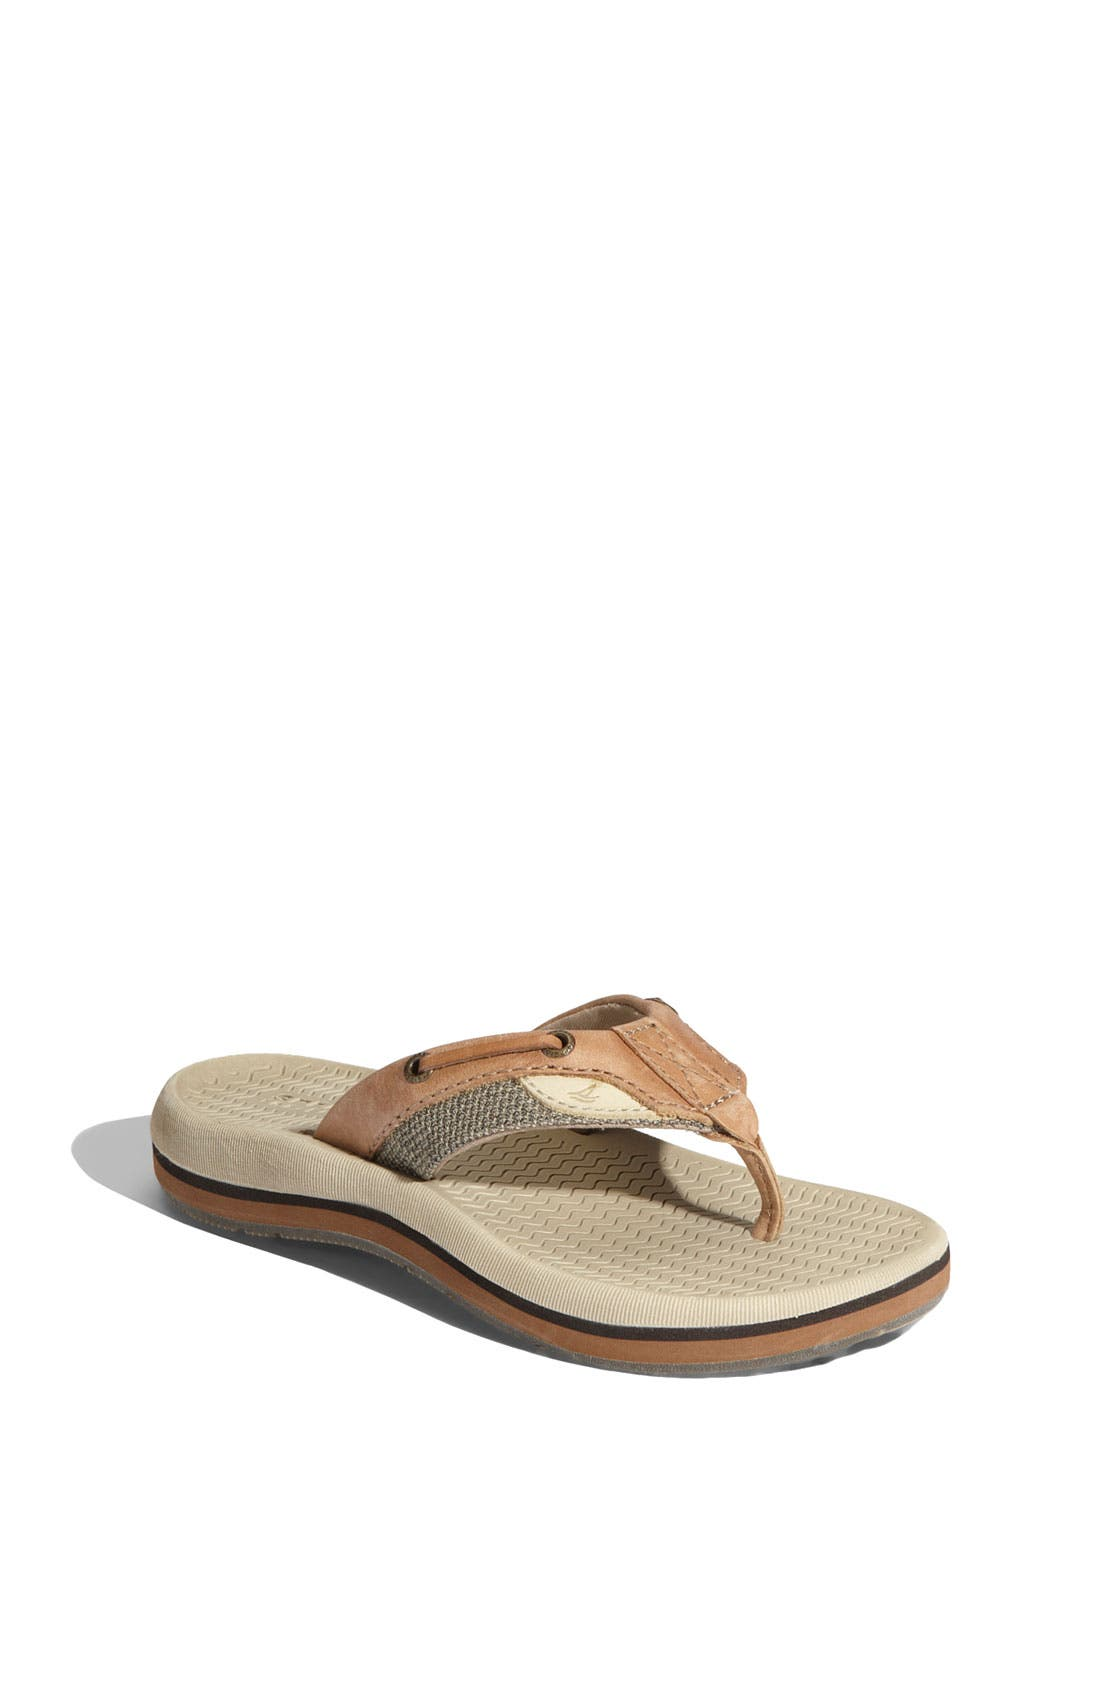 Alternate Image 1 Selected - Sperry Top-Sider® Kids 'Bluefish' Thong Sandal (Little Kid & Big Kid)